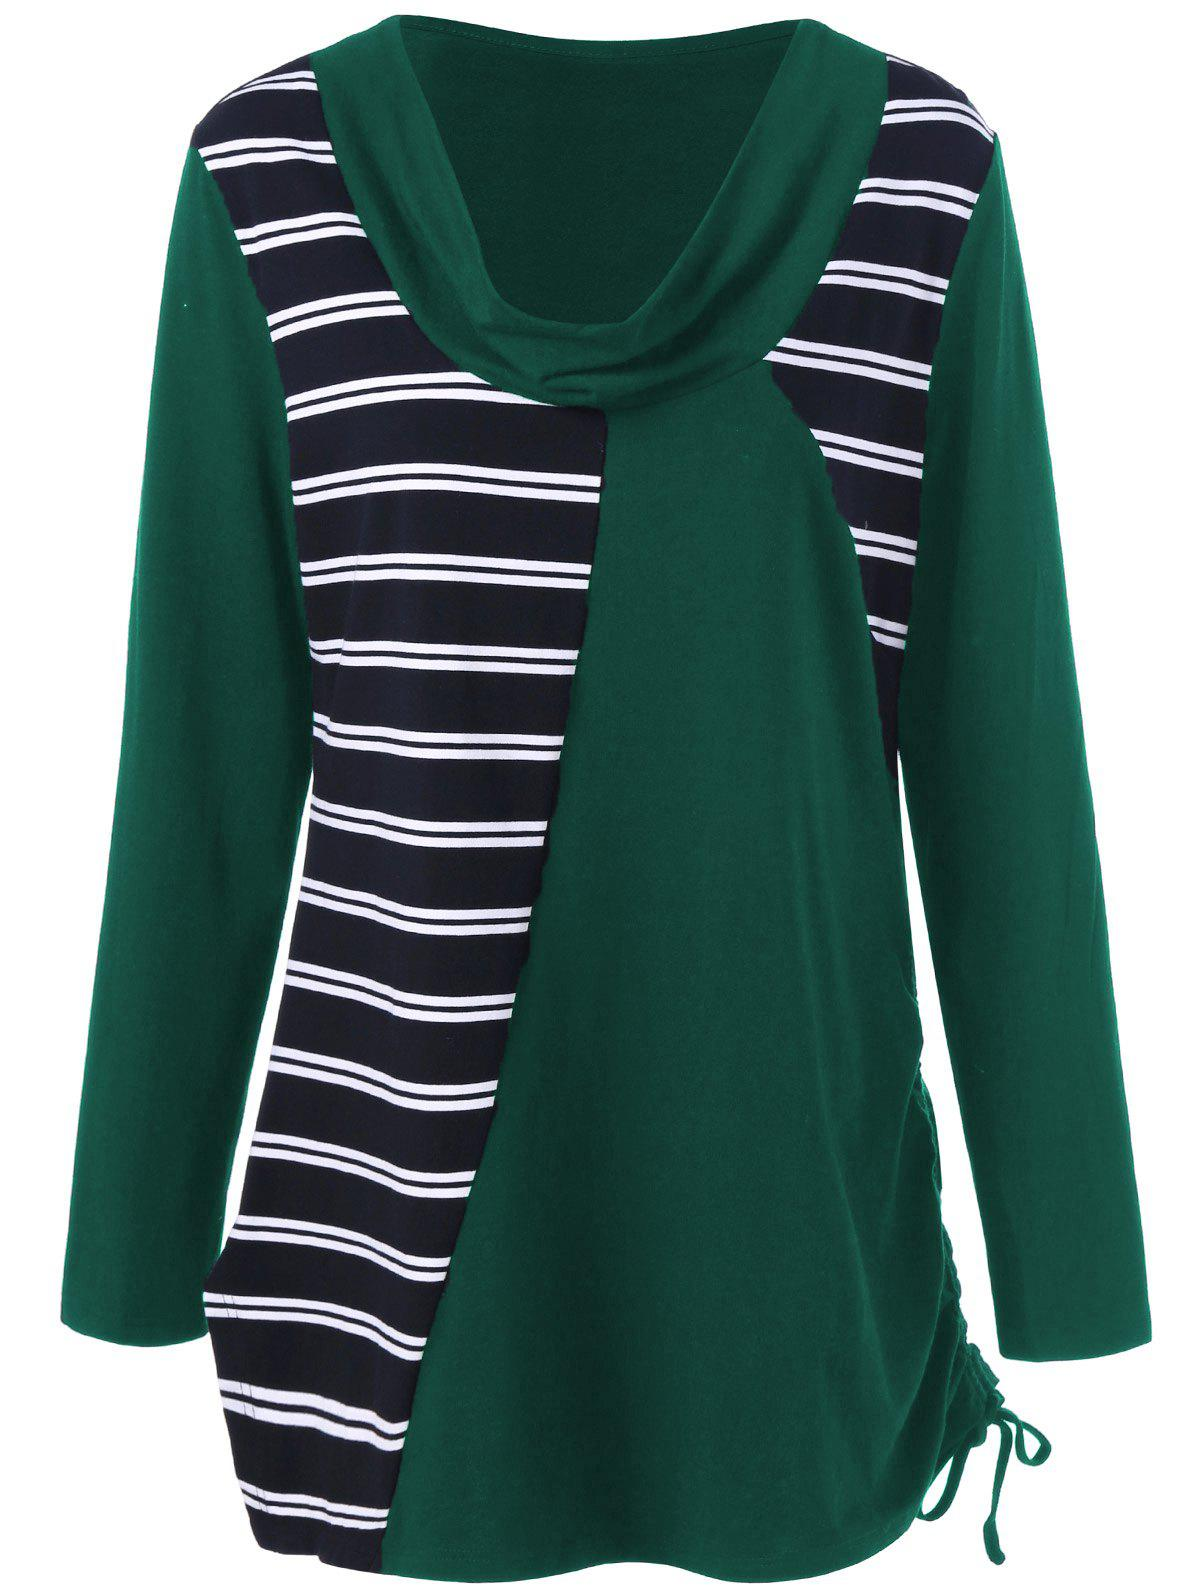 Plus Size Cowl Neck Striped Tunic T-Shirt inc new women s size small s beige black ombre ribbed cowl neck tunic $79 355